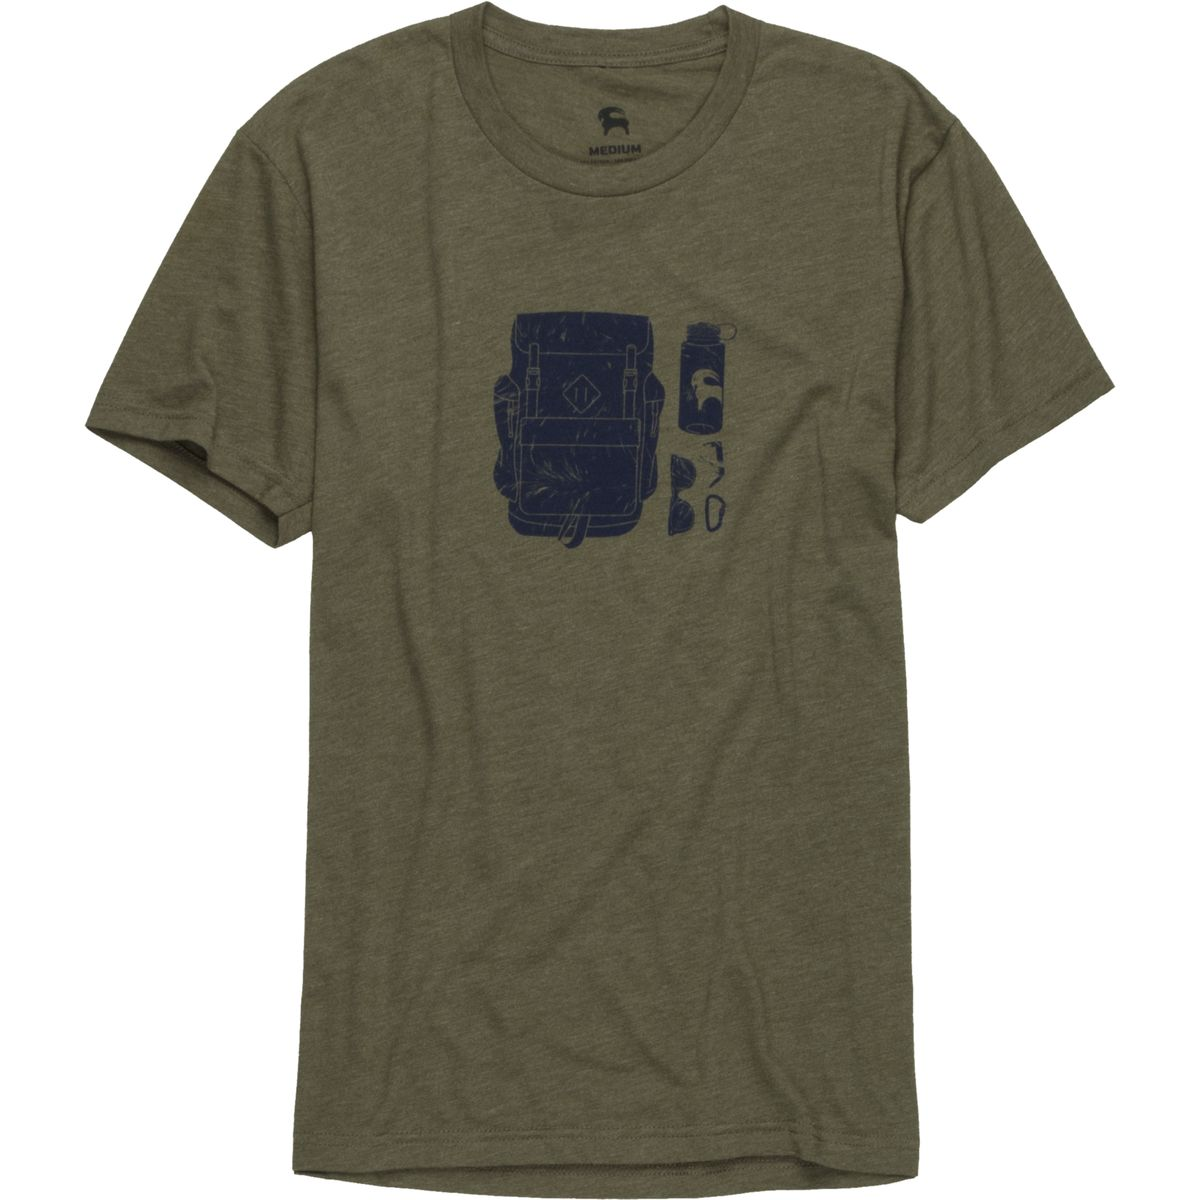 Backcountry Backcountry Artist T Shirt  Michael Van Voorhis  Mens Military Green L